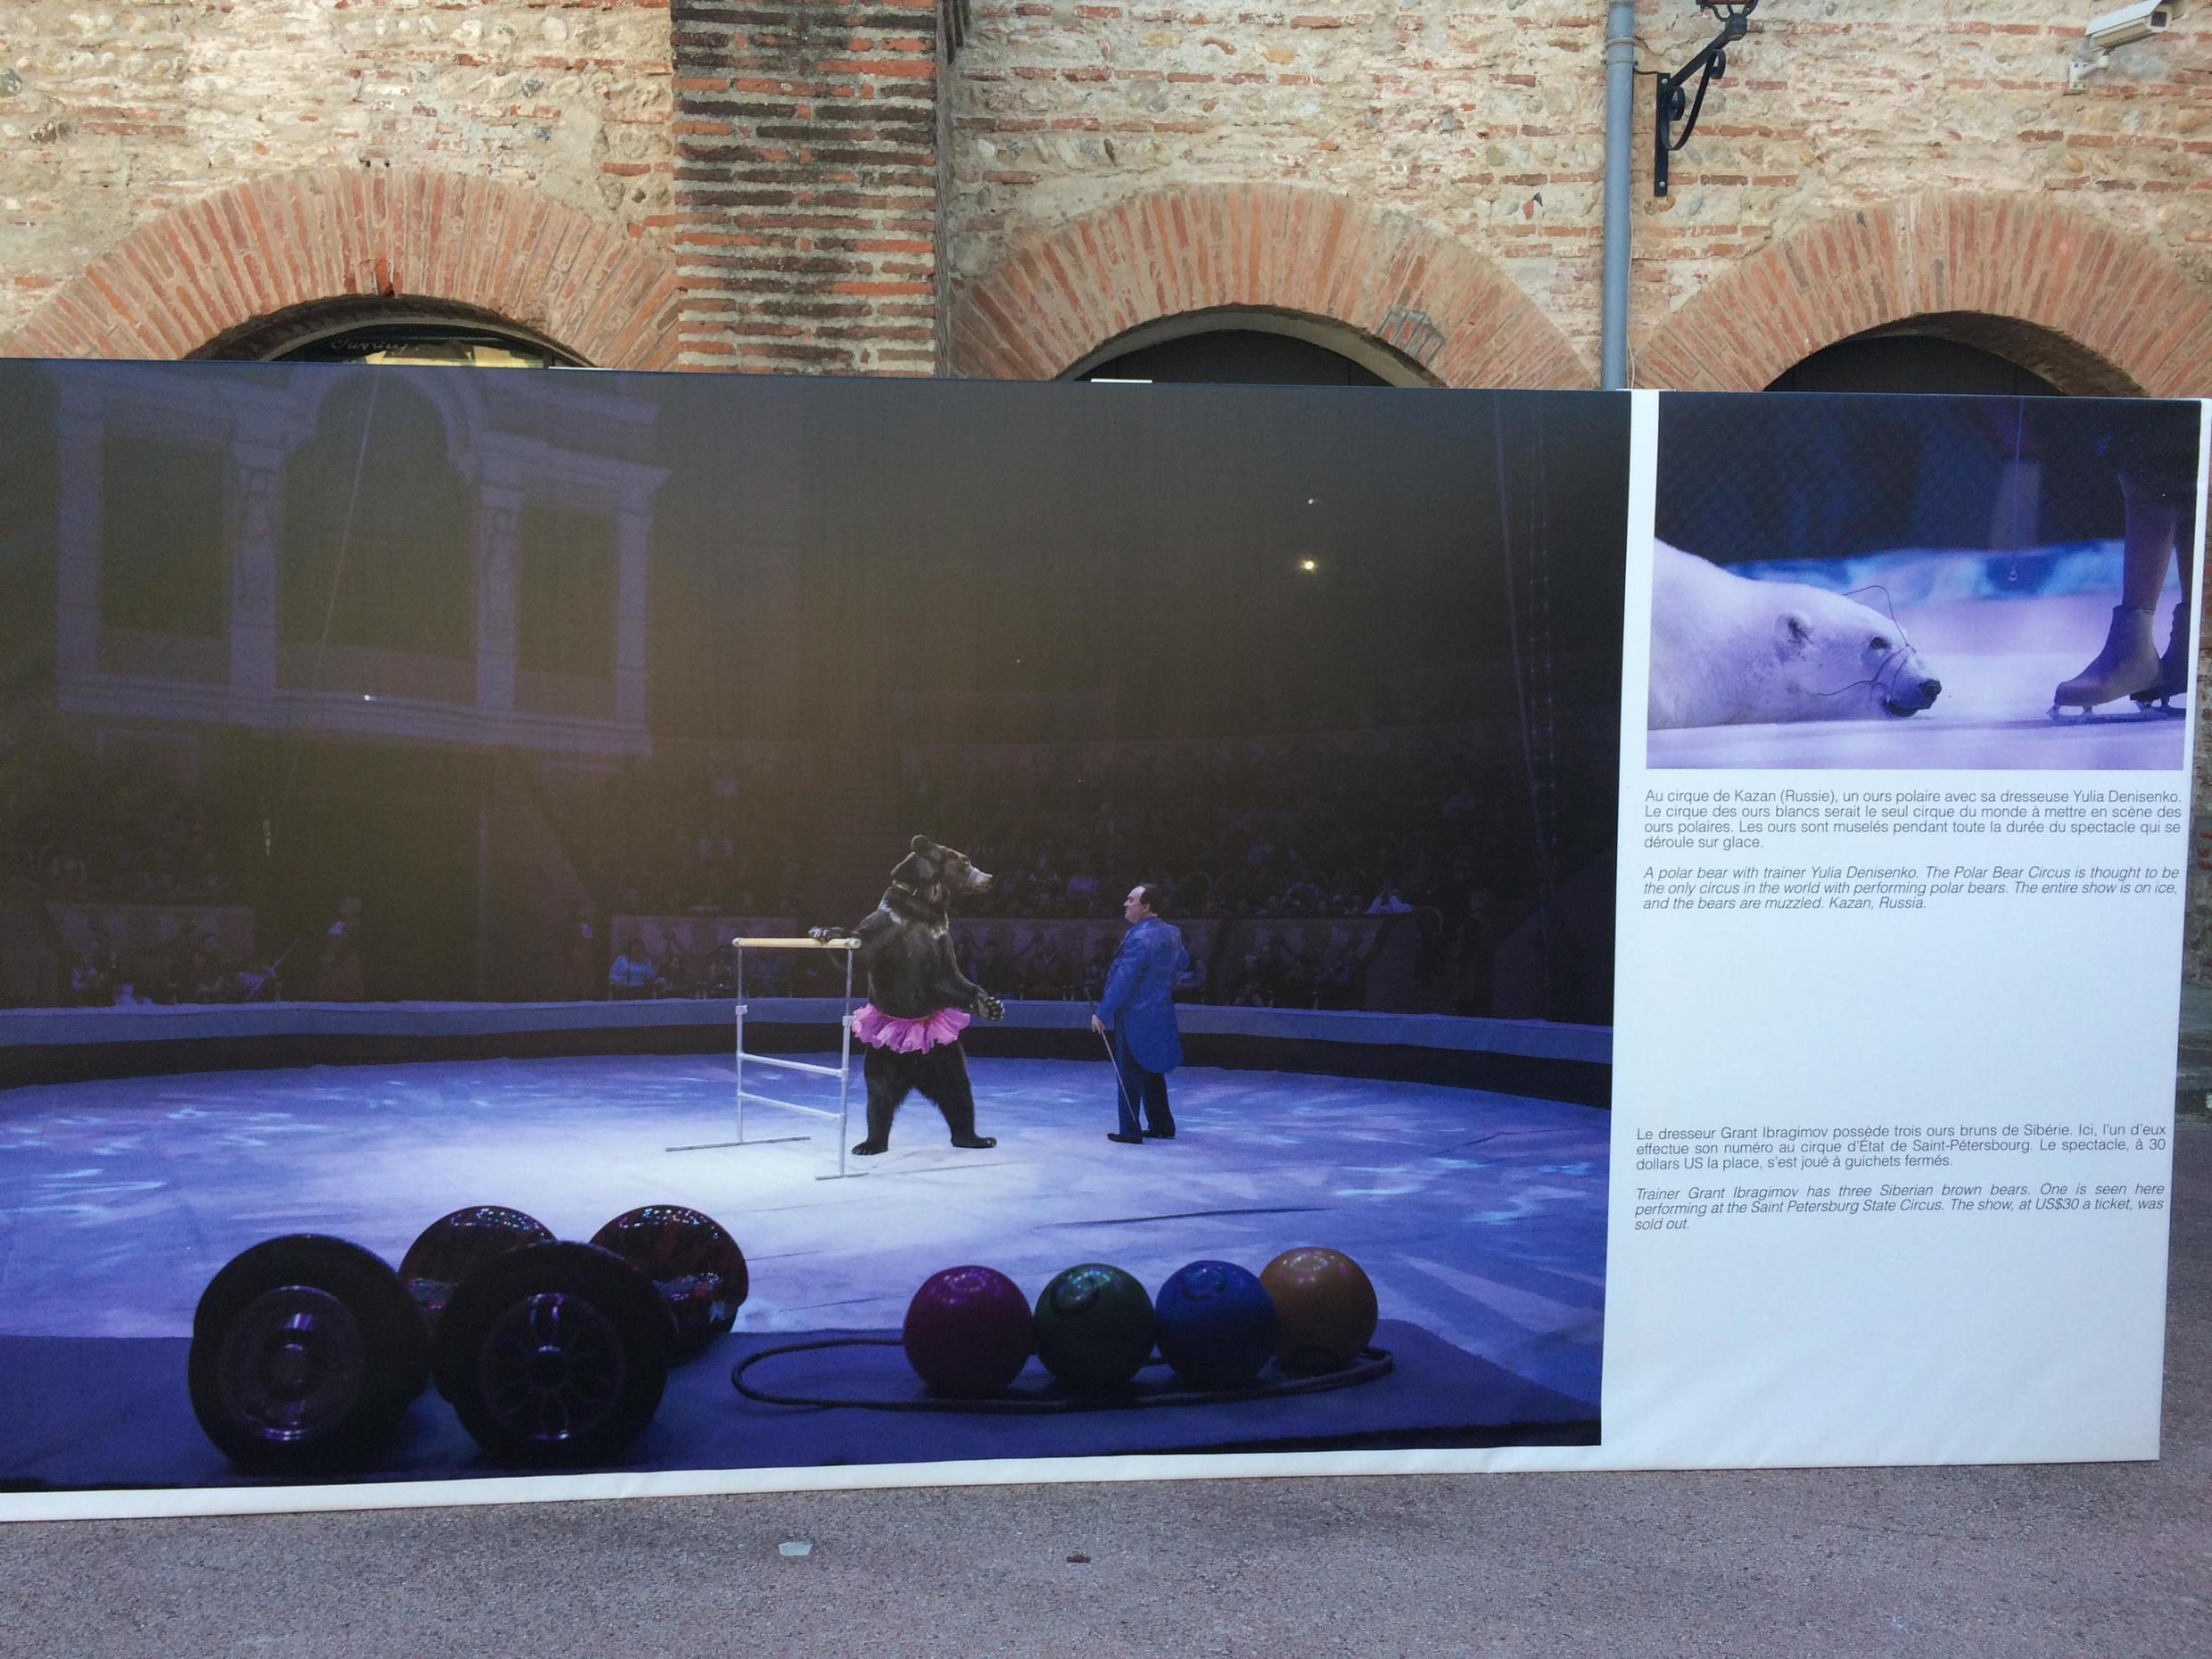 Image of bears performing for the ice circus in Russia from Kirsten Luce's exposition